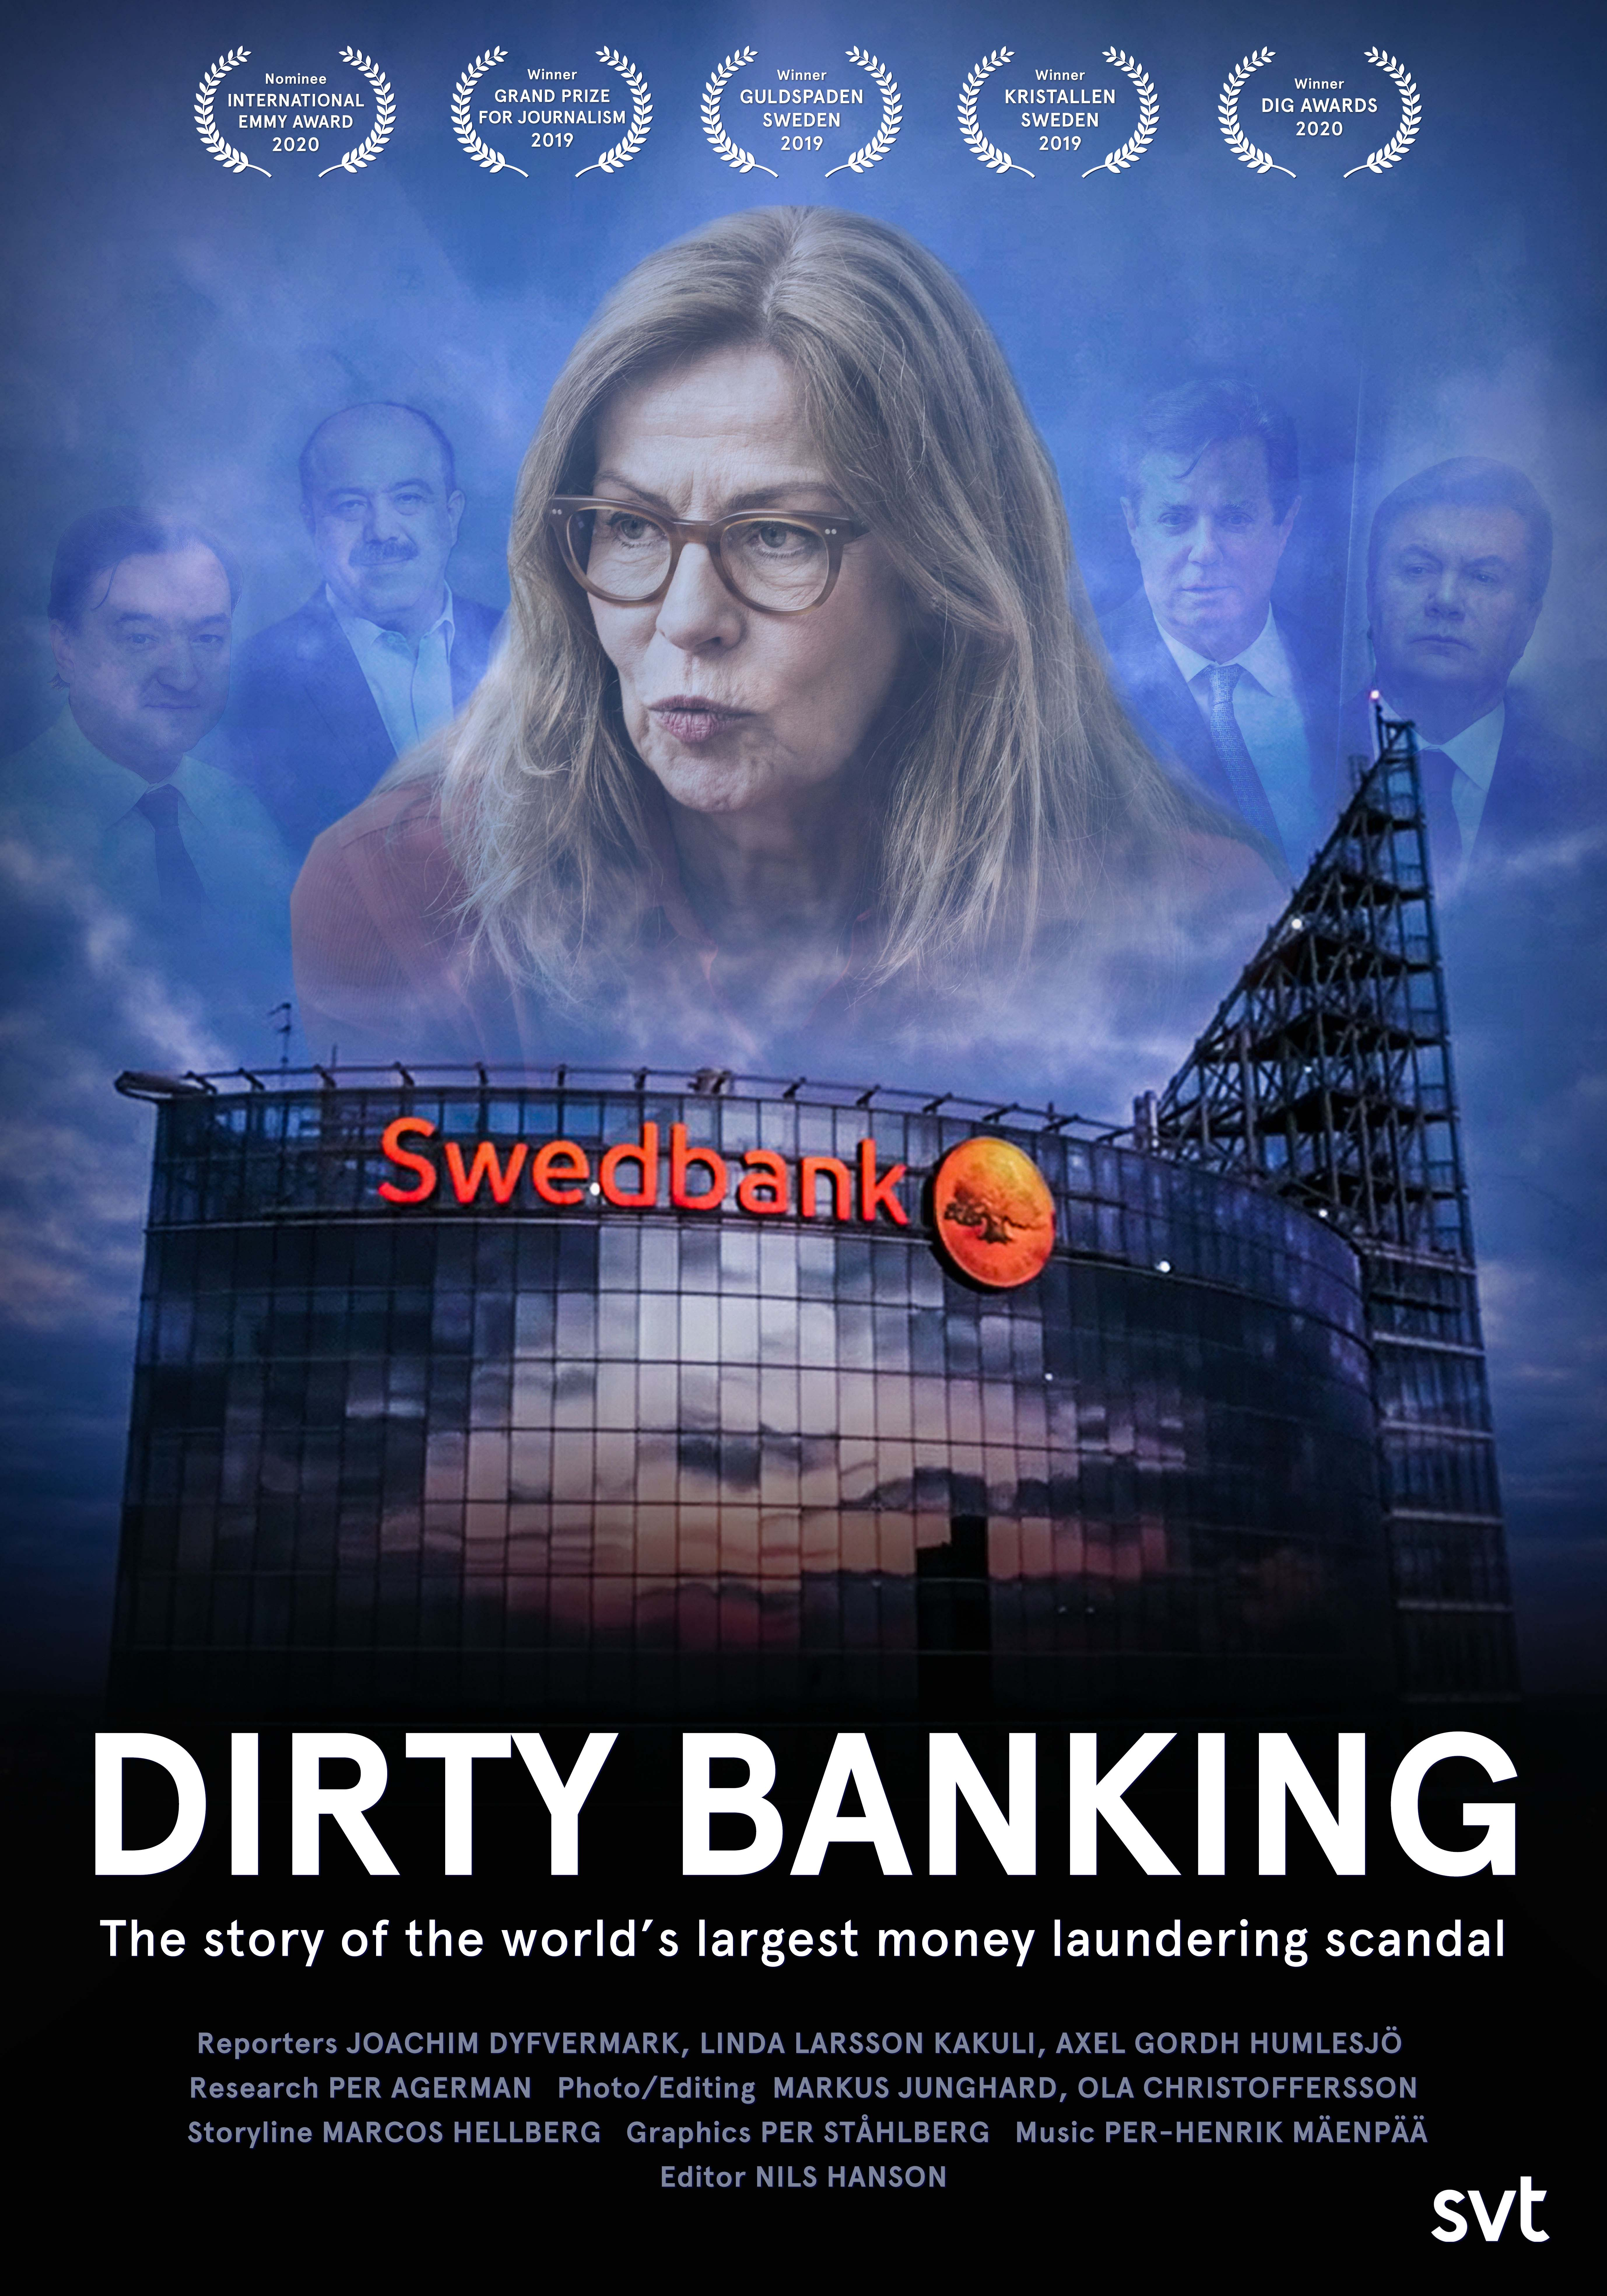 Poster image for the documentary Dirty Banking.